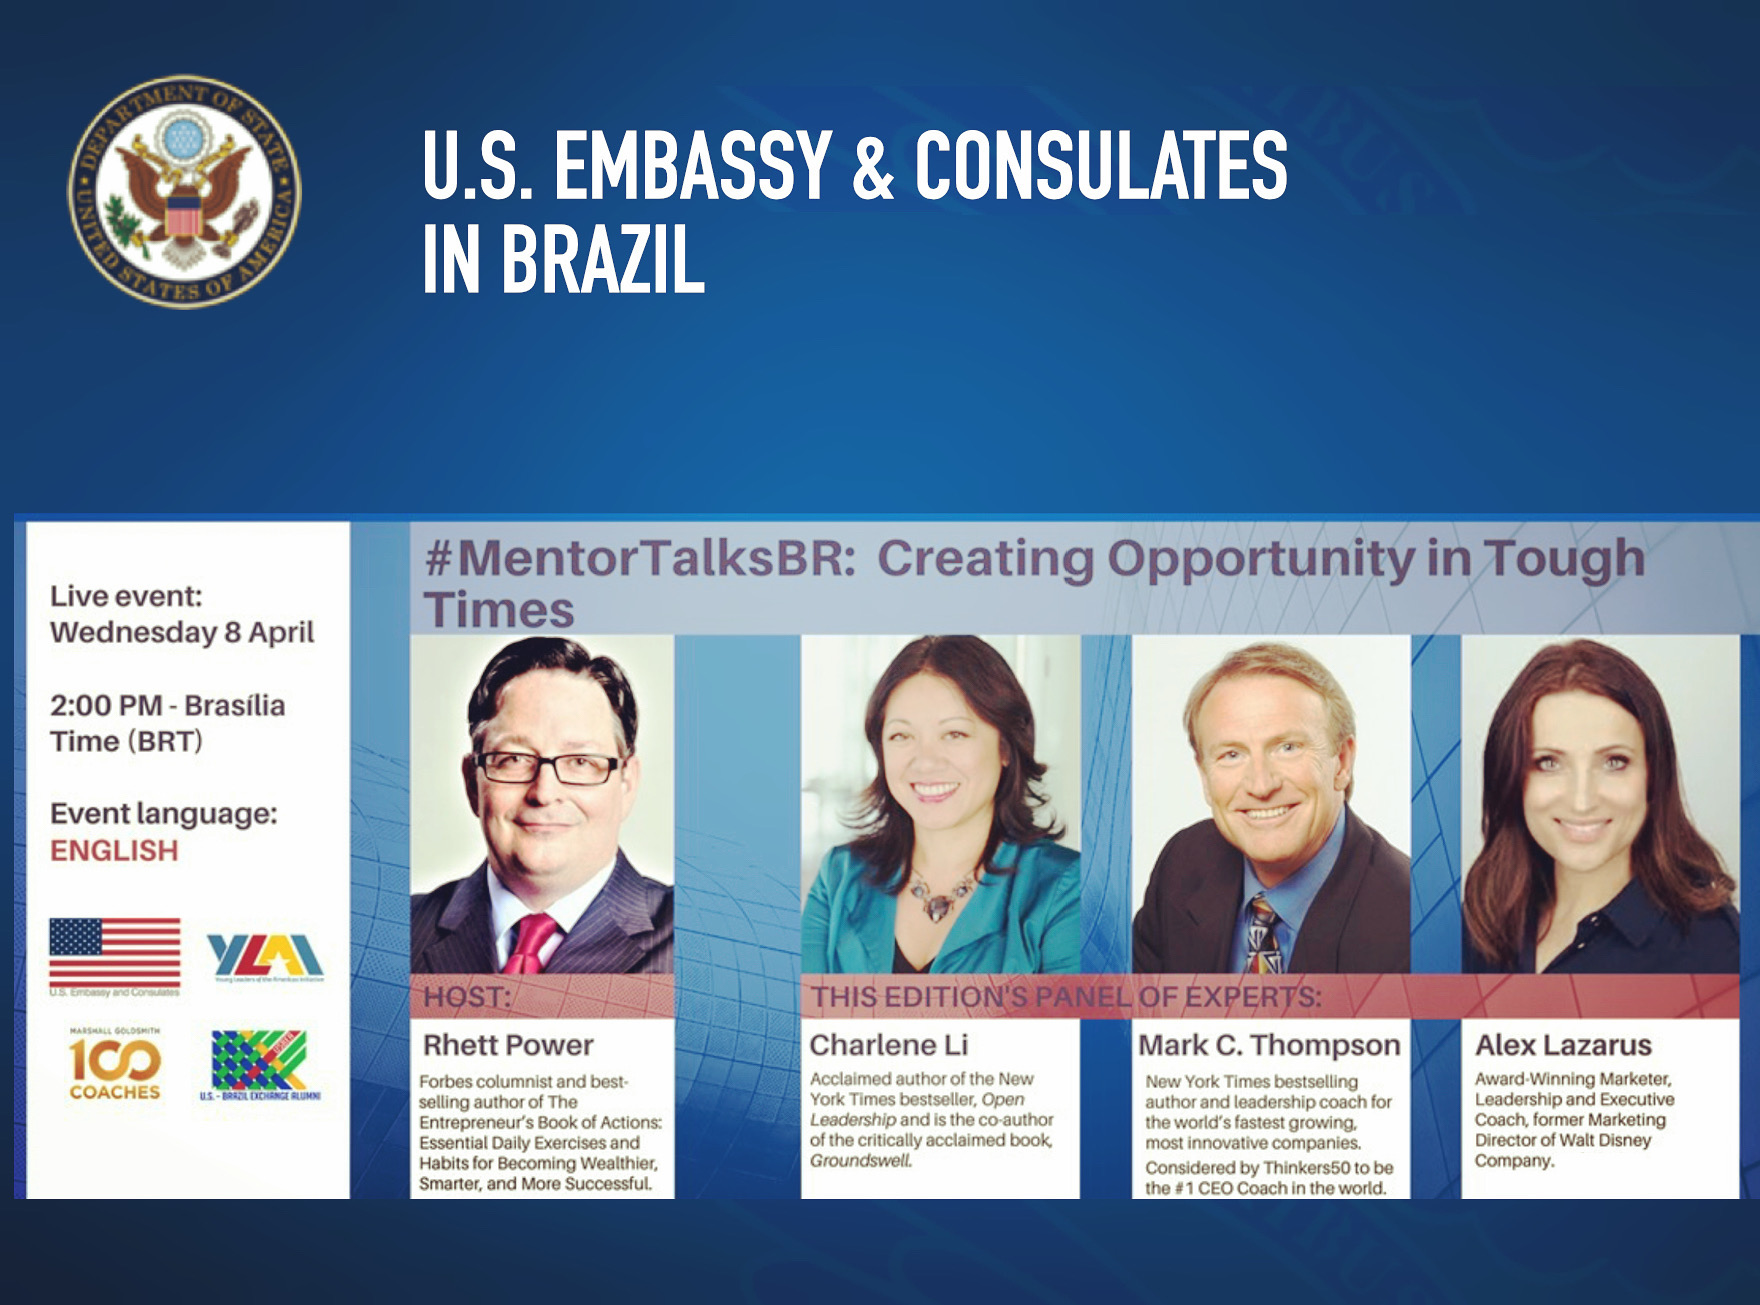 Speaking at the U.S. Embassy in Brazil